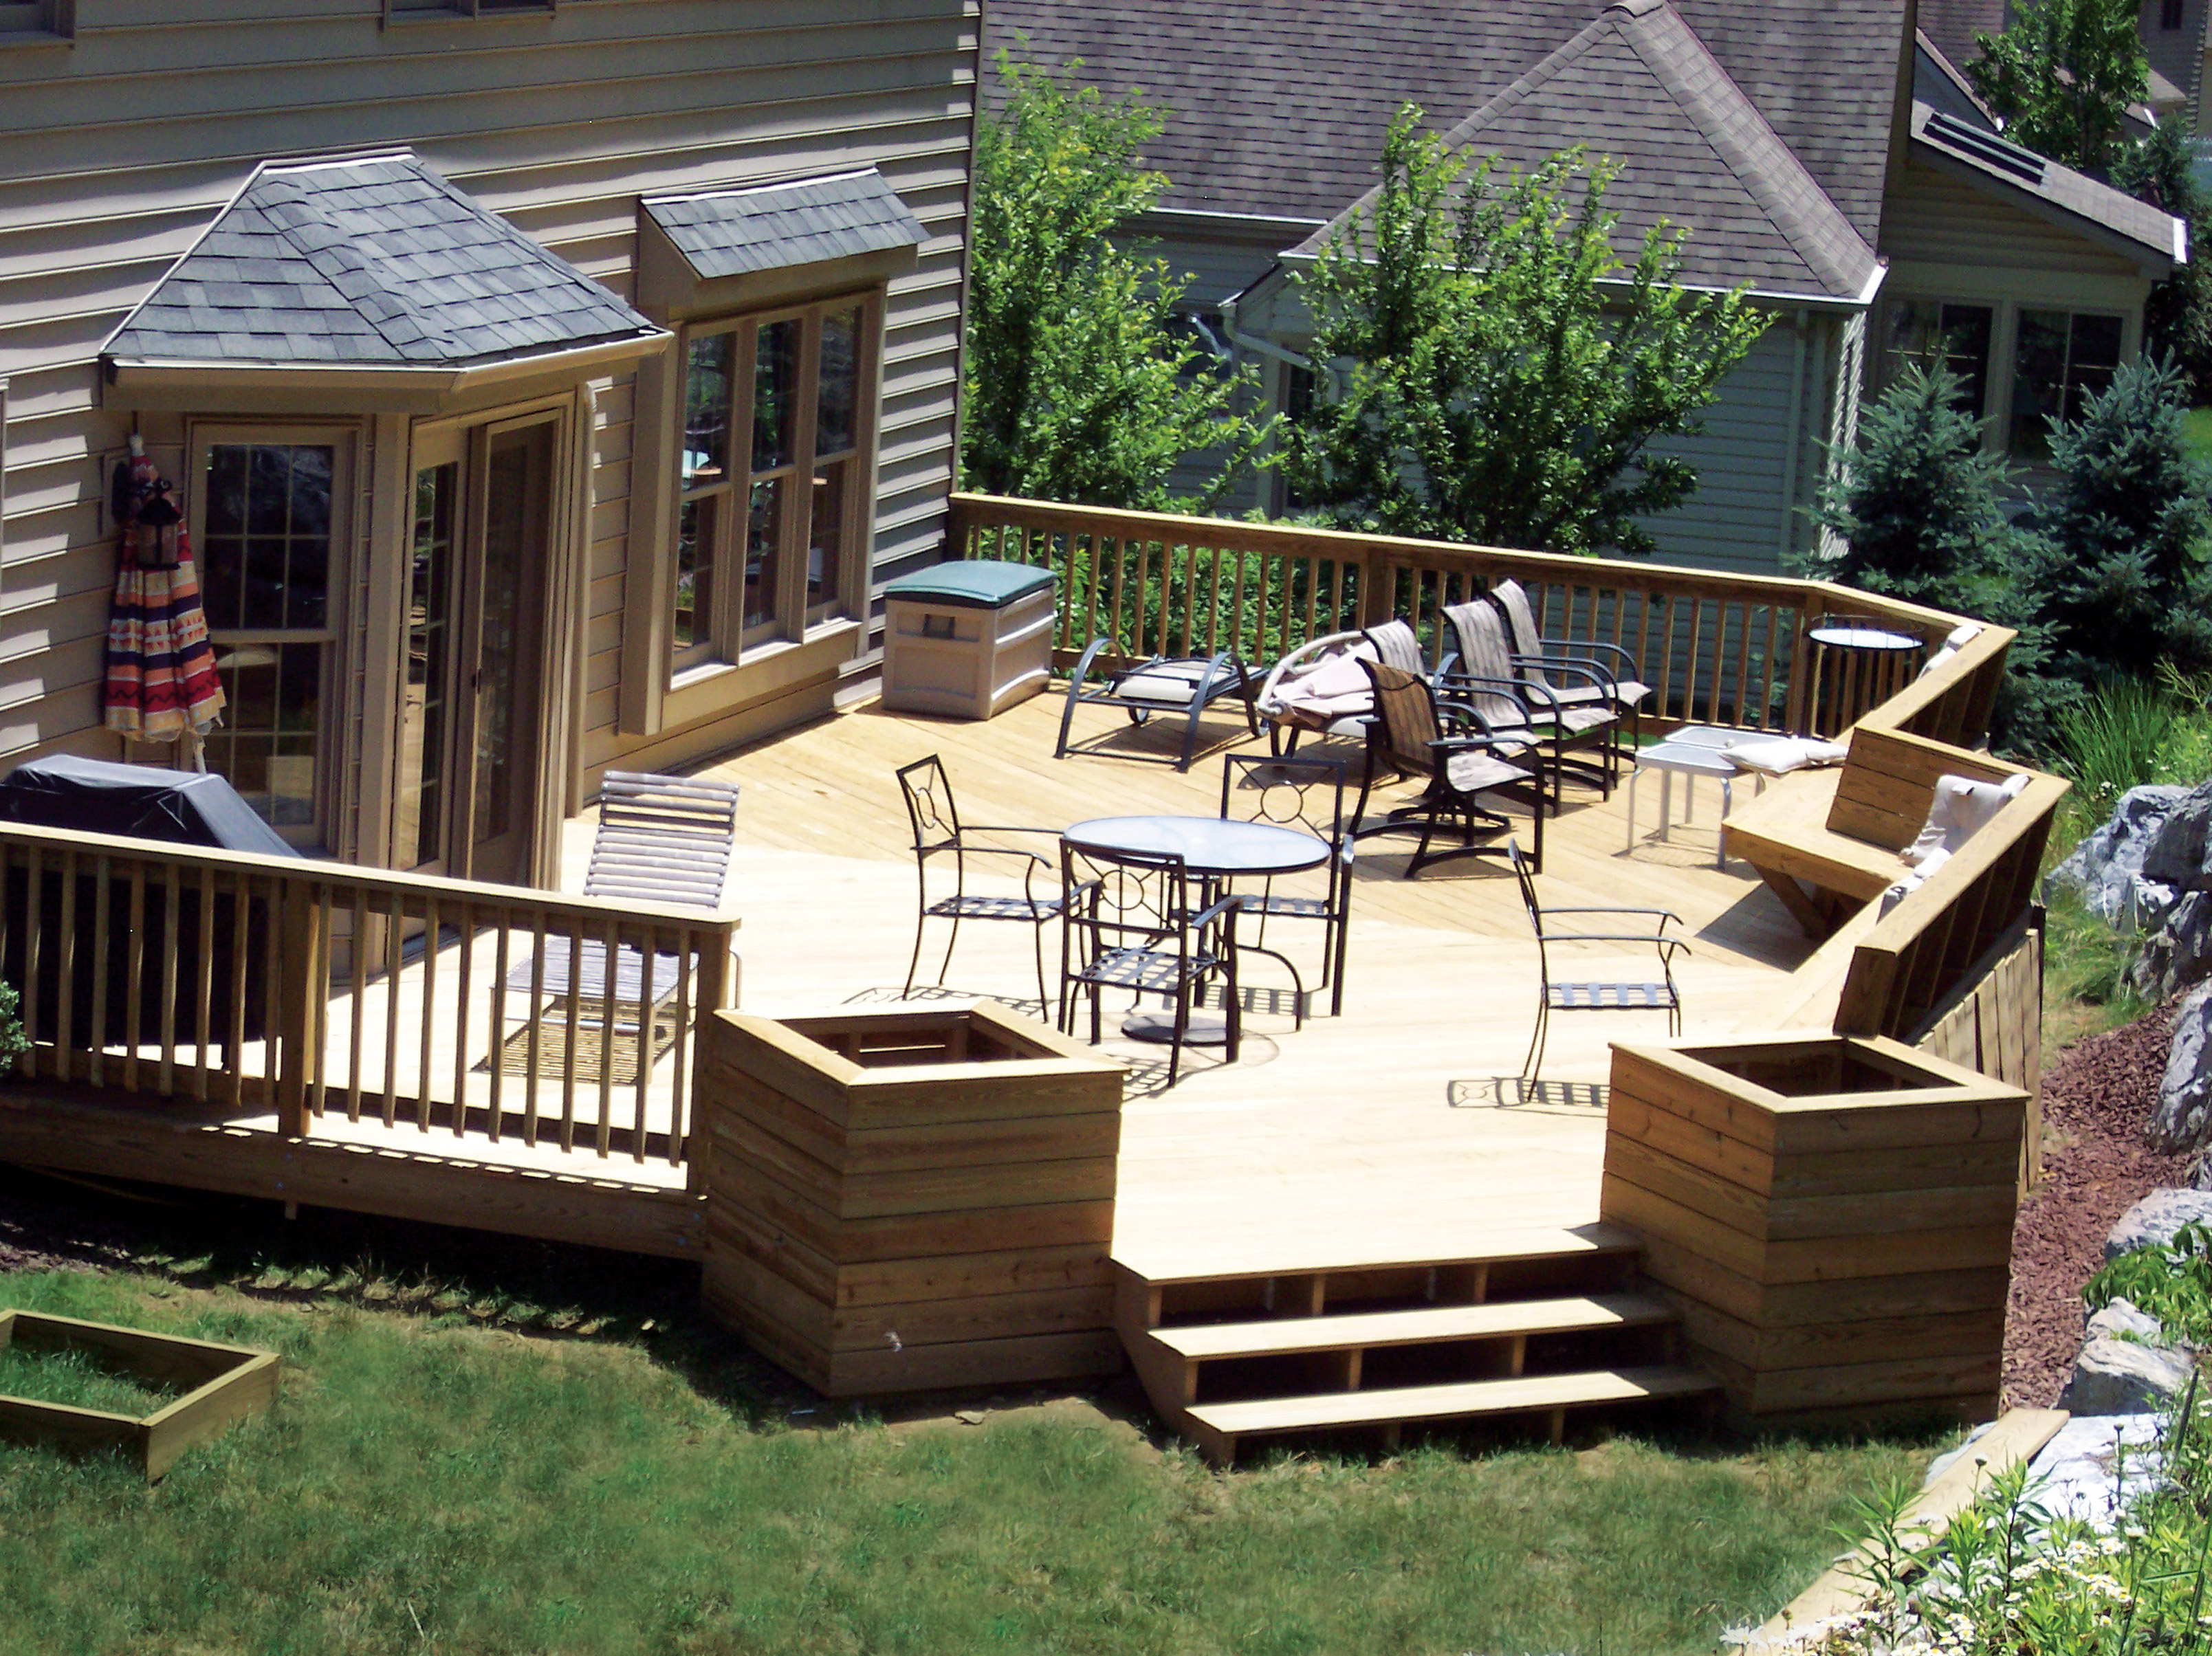 Deck Design Ideas rooftop deck Simple Backyard Deck Designs Simple Deck Designs Pertaining To Inspire Deck Design Ideas Deck Design Ideas